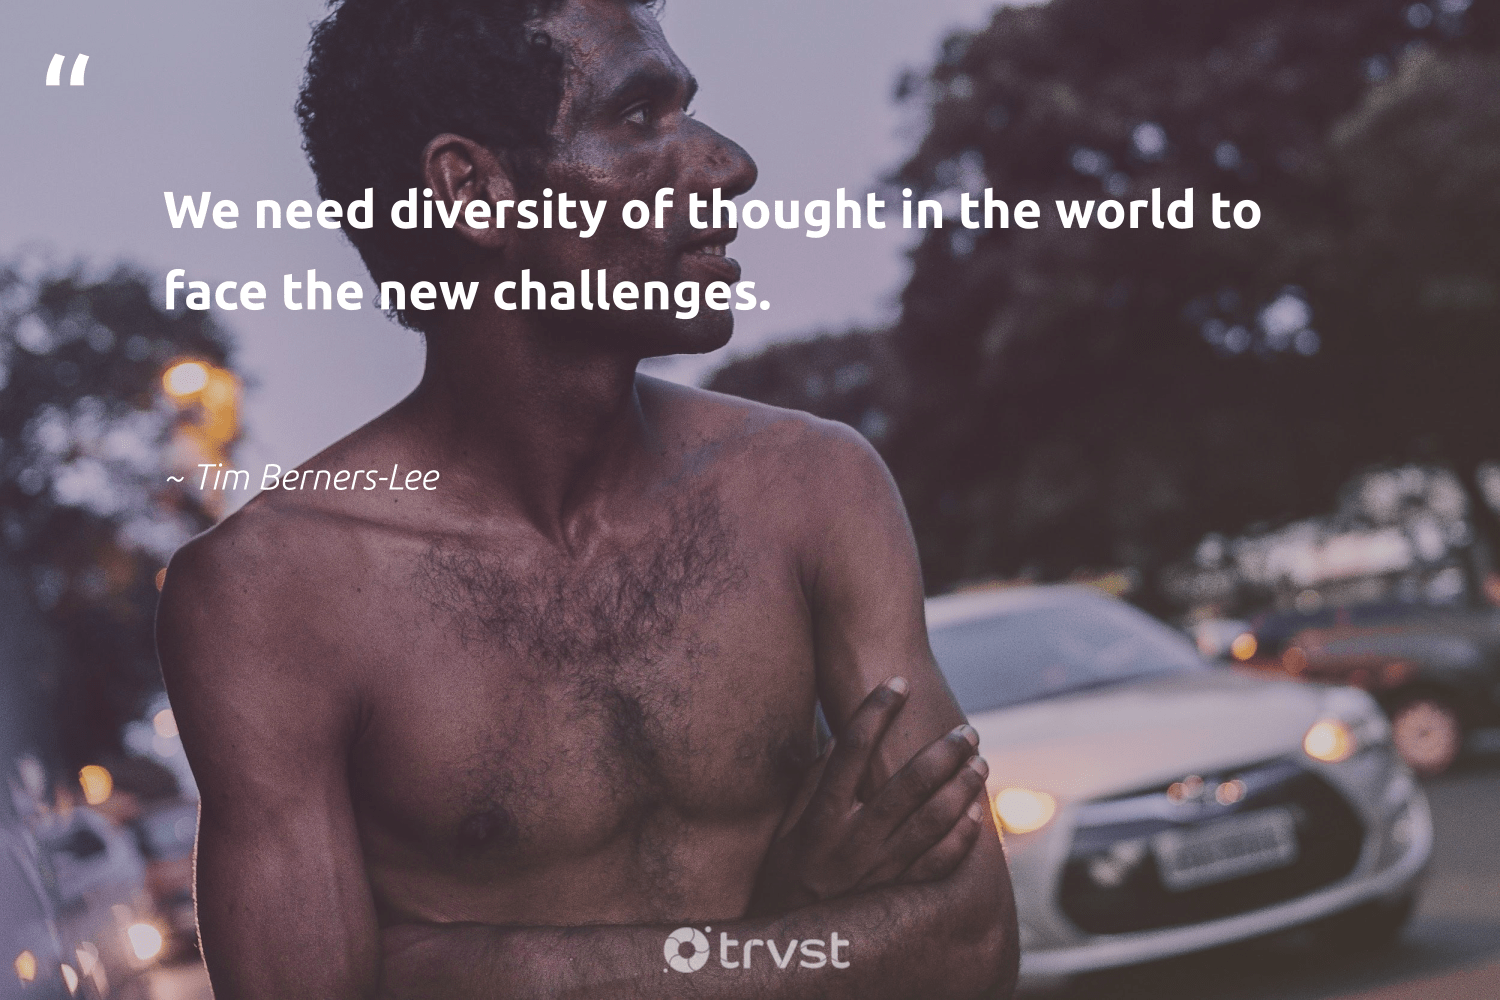 """We need diversity of thought in the world to face the new challenges.""  - Tim Berners-Lee #trvst #quotes #diversity #representationmatters #discrimination #bethechange #socialchange #dosomething #inclusion #weareallone #giveback #impact"